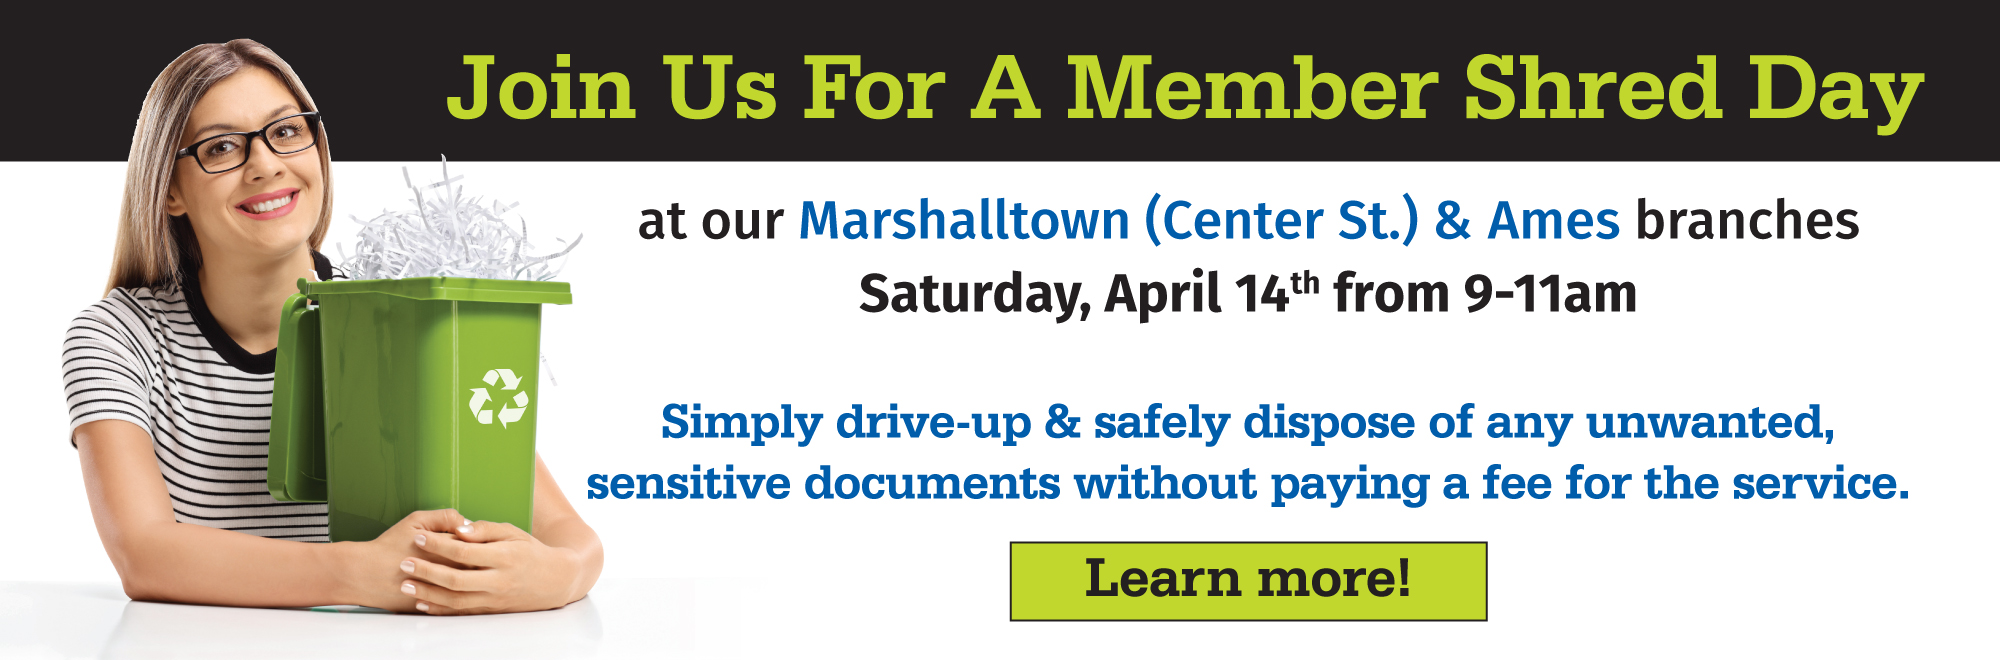 Join us for a member shred day.